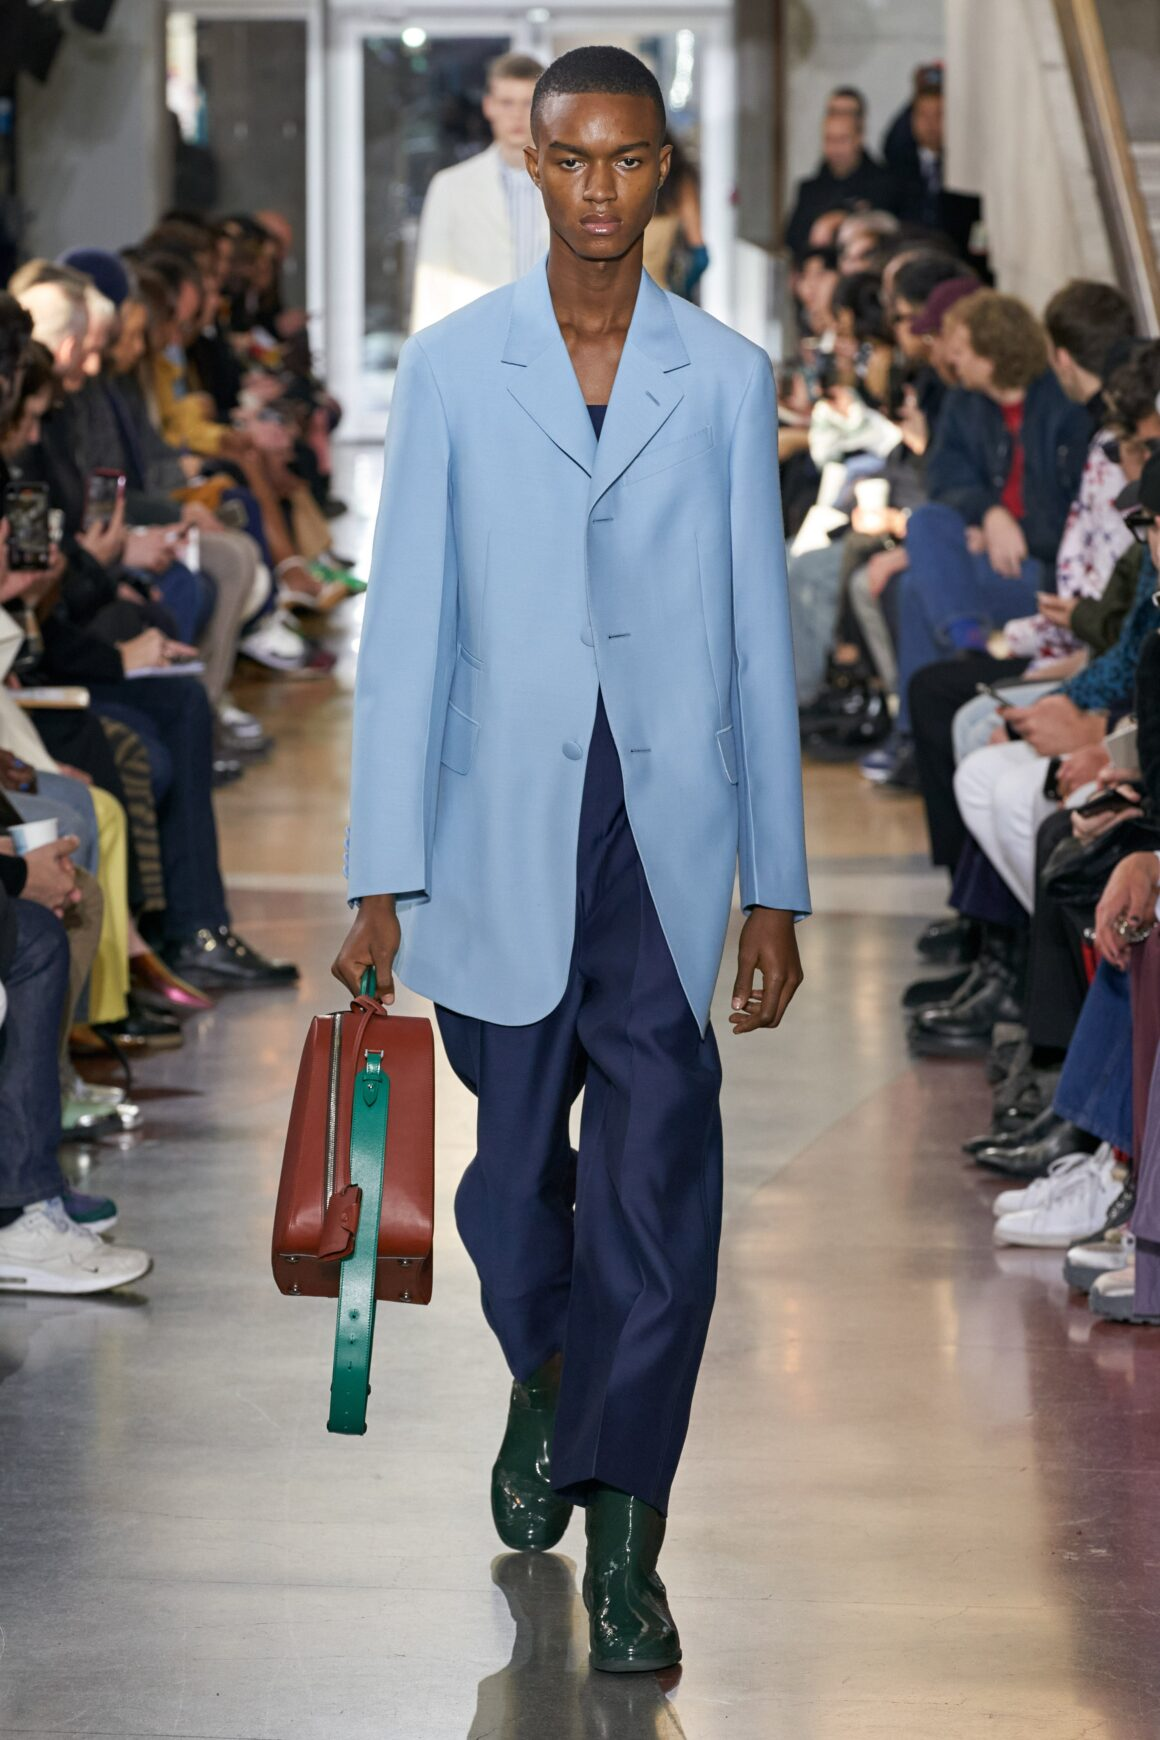 Lanvin - Oversized Suit